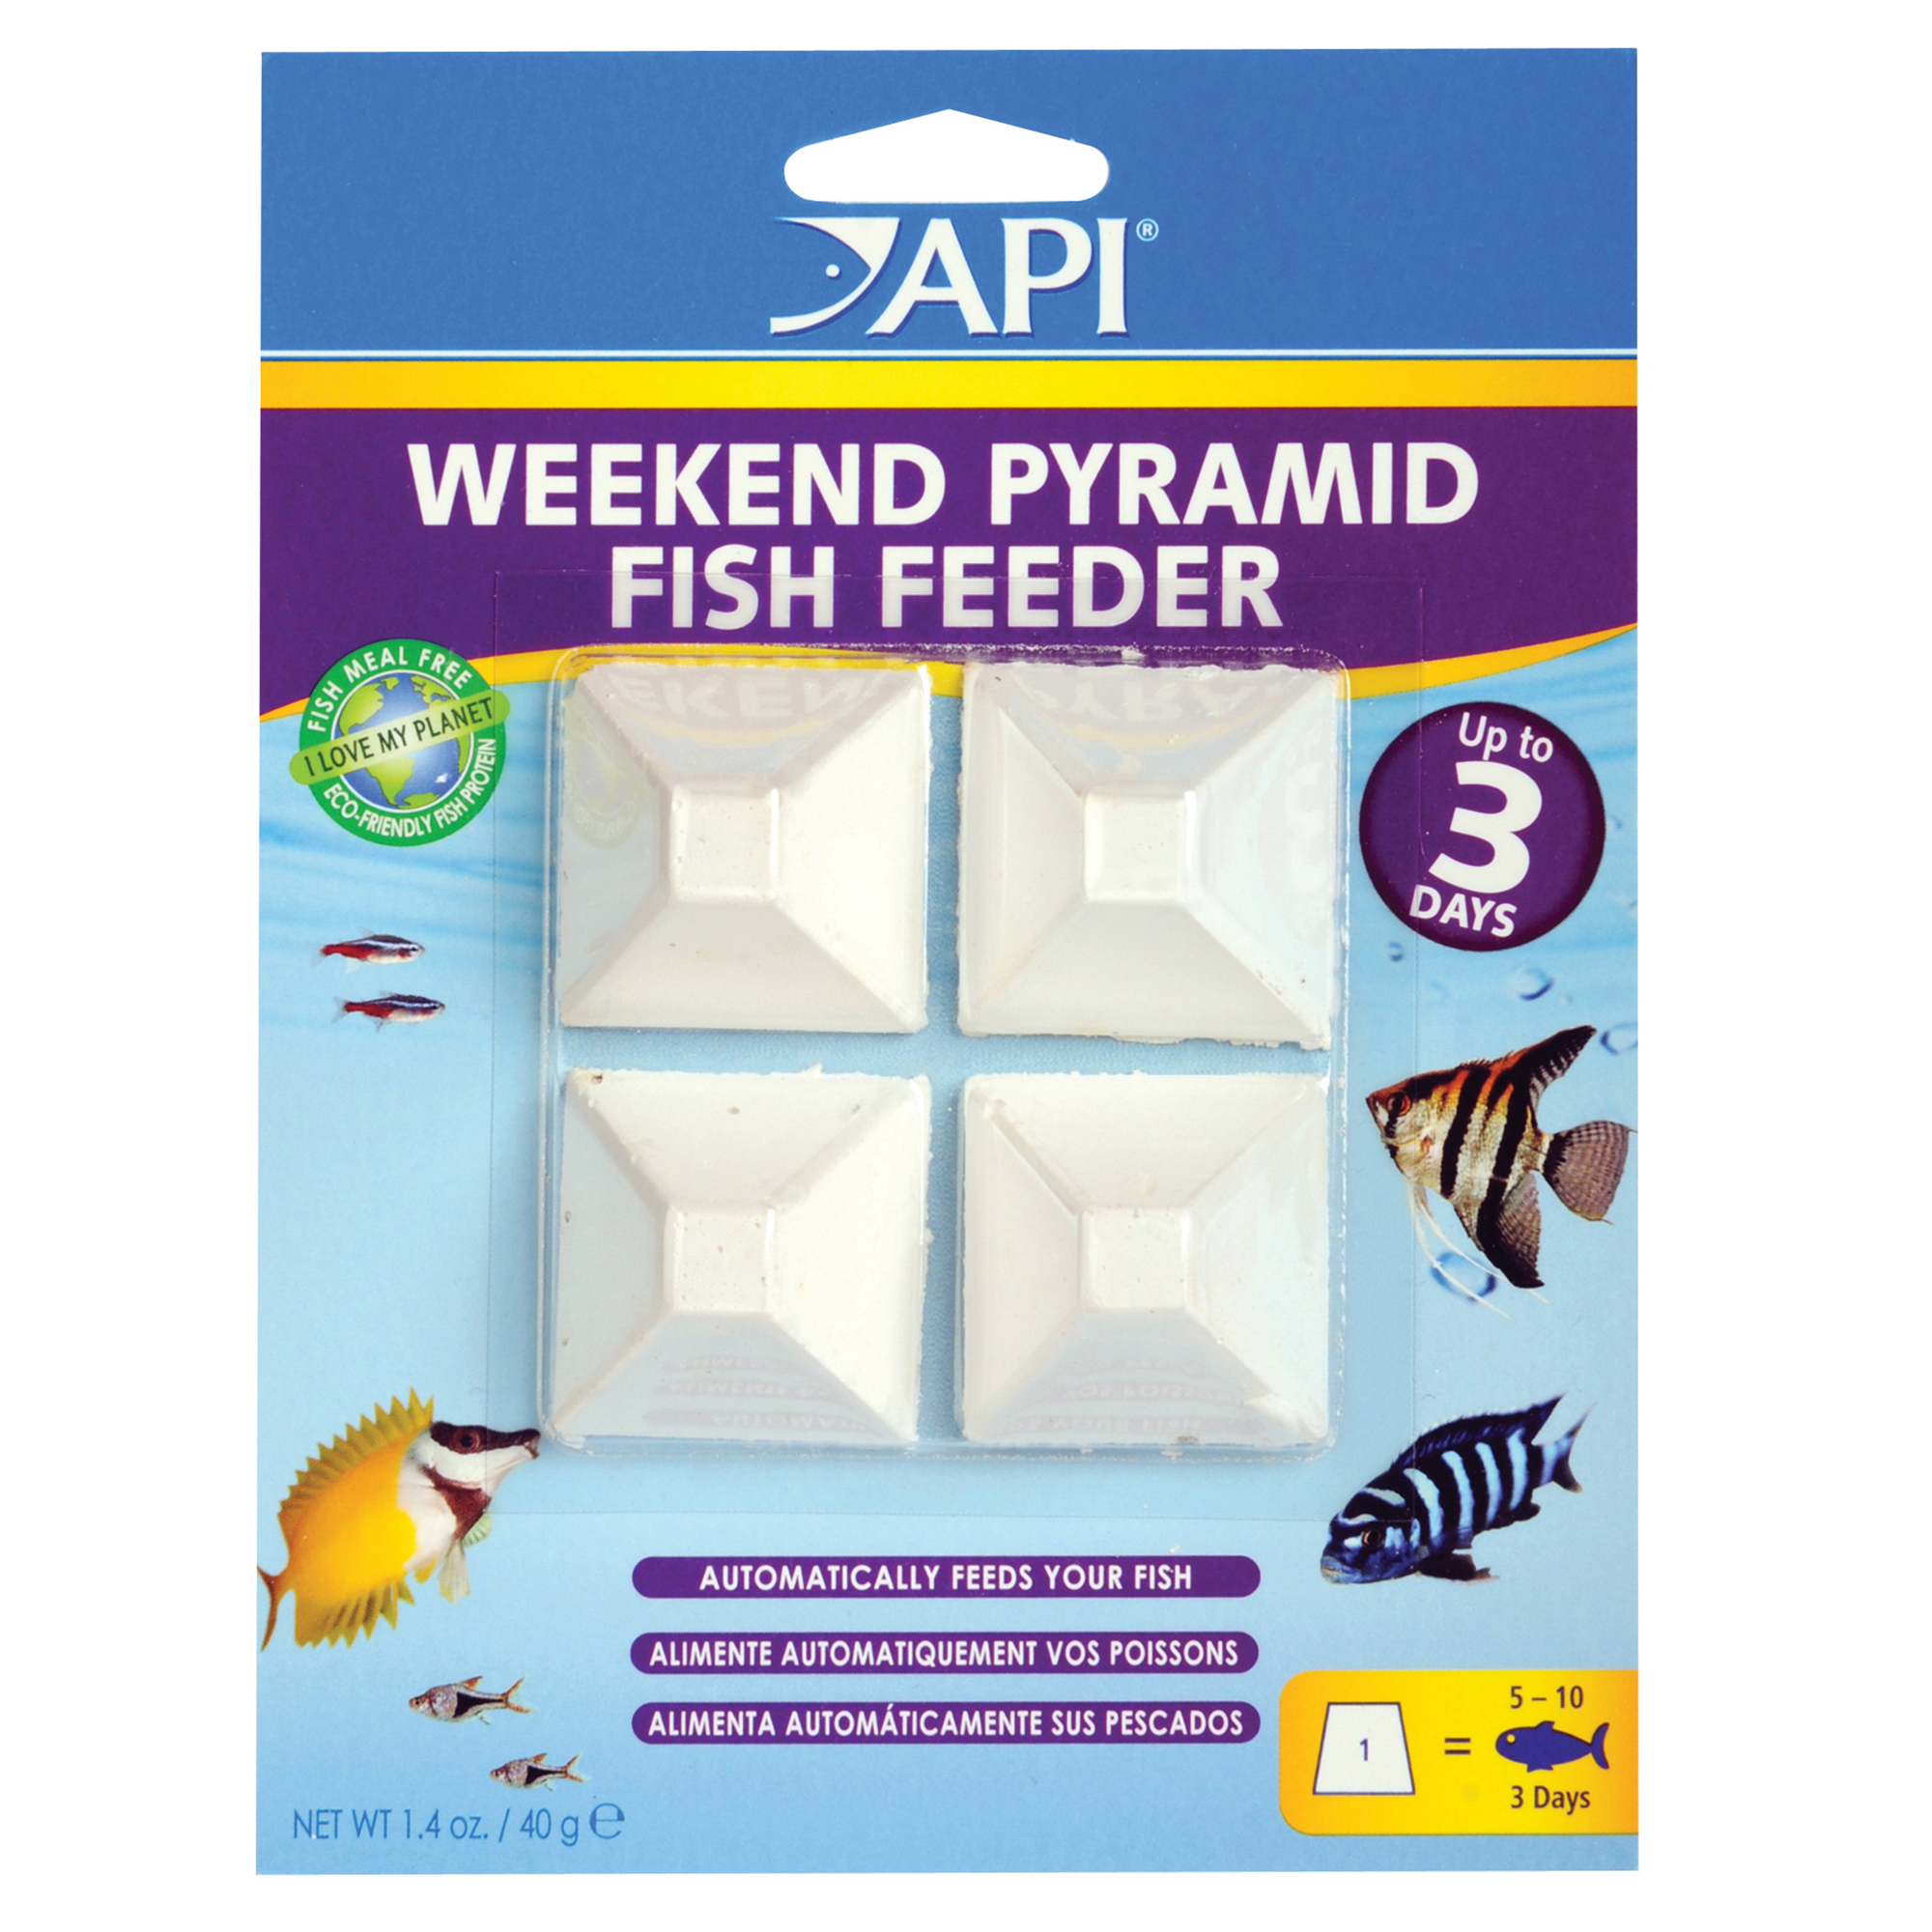 WEEKEND PYRAMID FISH FEEDER